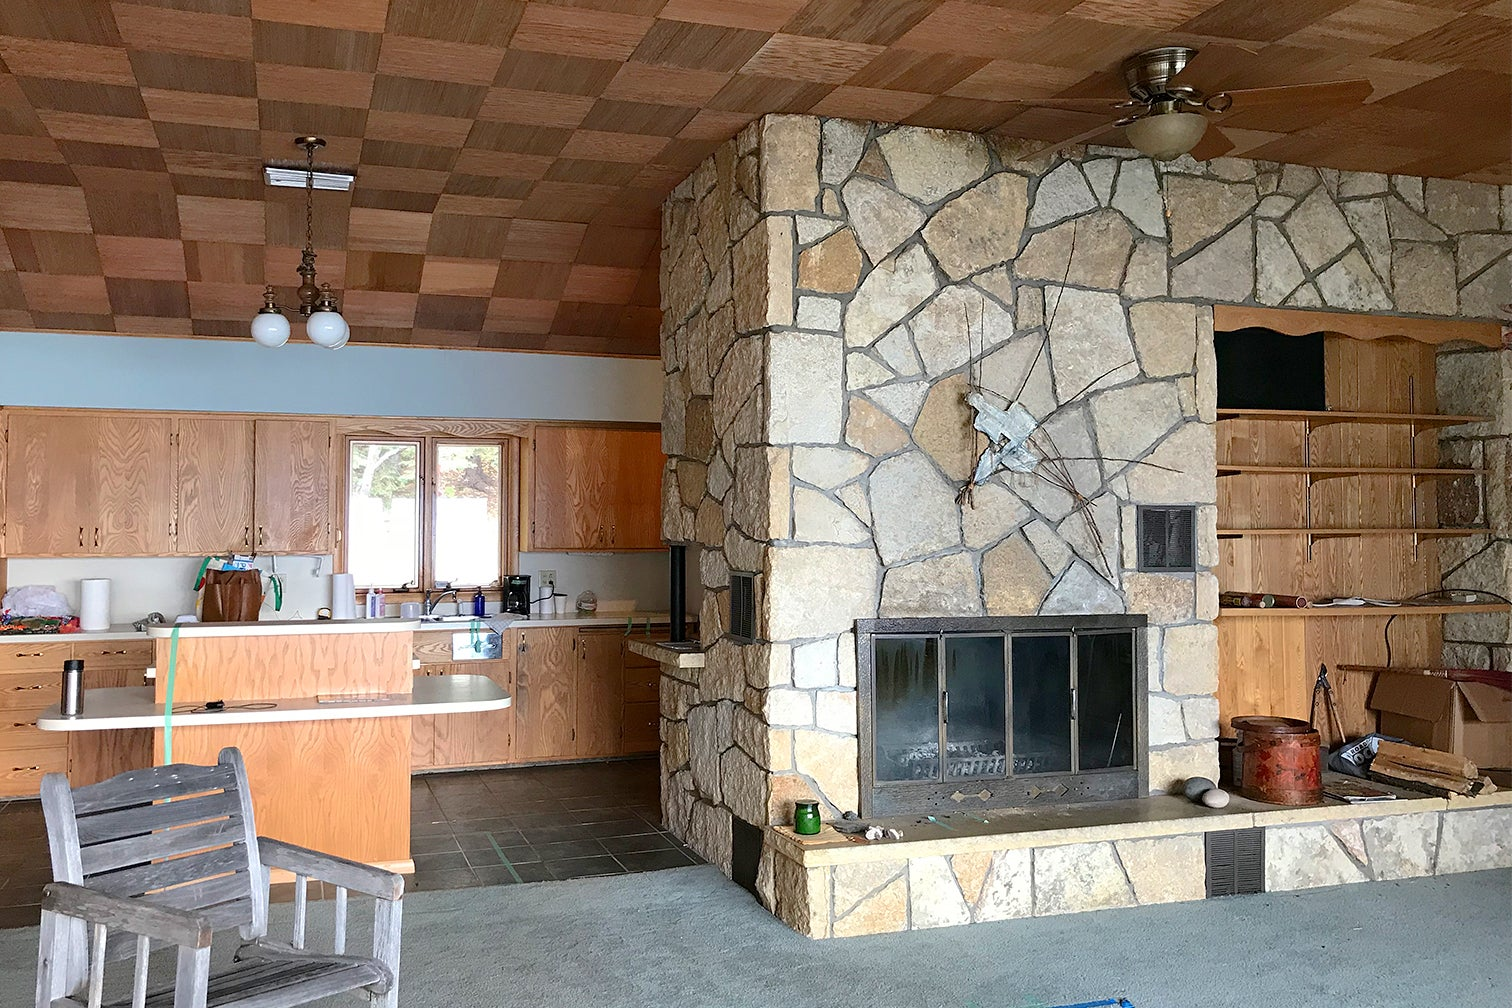 stone fireplace next to dated kitchen